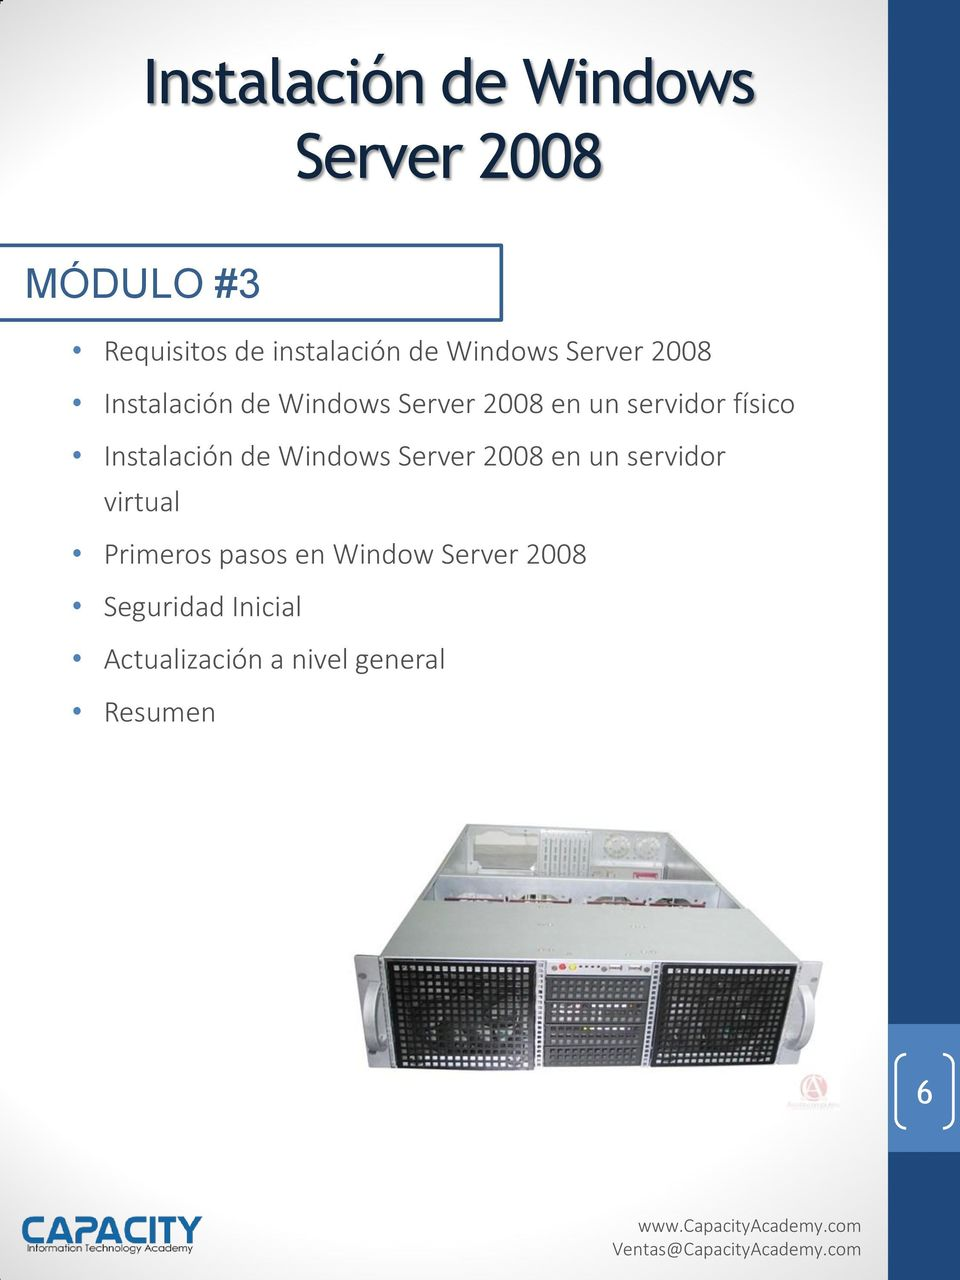 físico Instalación de Windows Server 2008 en un servidor virtual Primeros